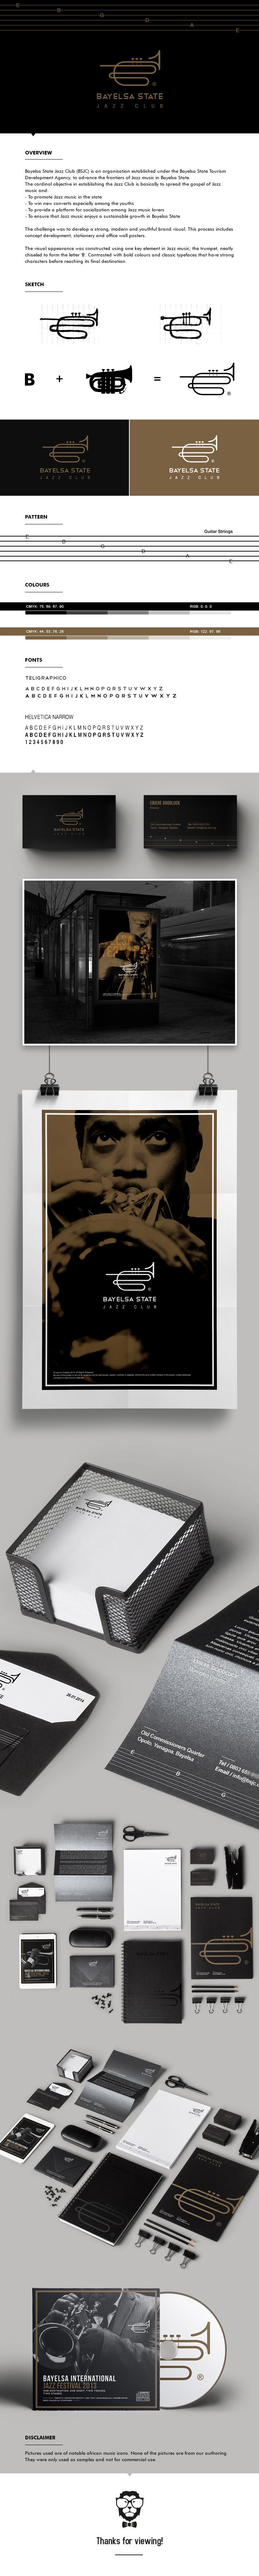 Bayelsa State Jazz Club | Thomas Peretu - I love how they have carried the branding across and into the photographic content. Also the inclusion of the guitar strings/tab as a secondary design element is really nice and relates directly to their subject matter.